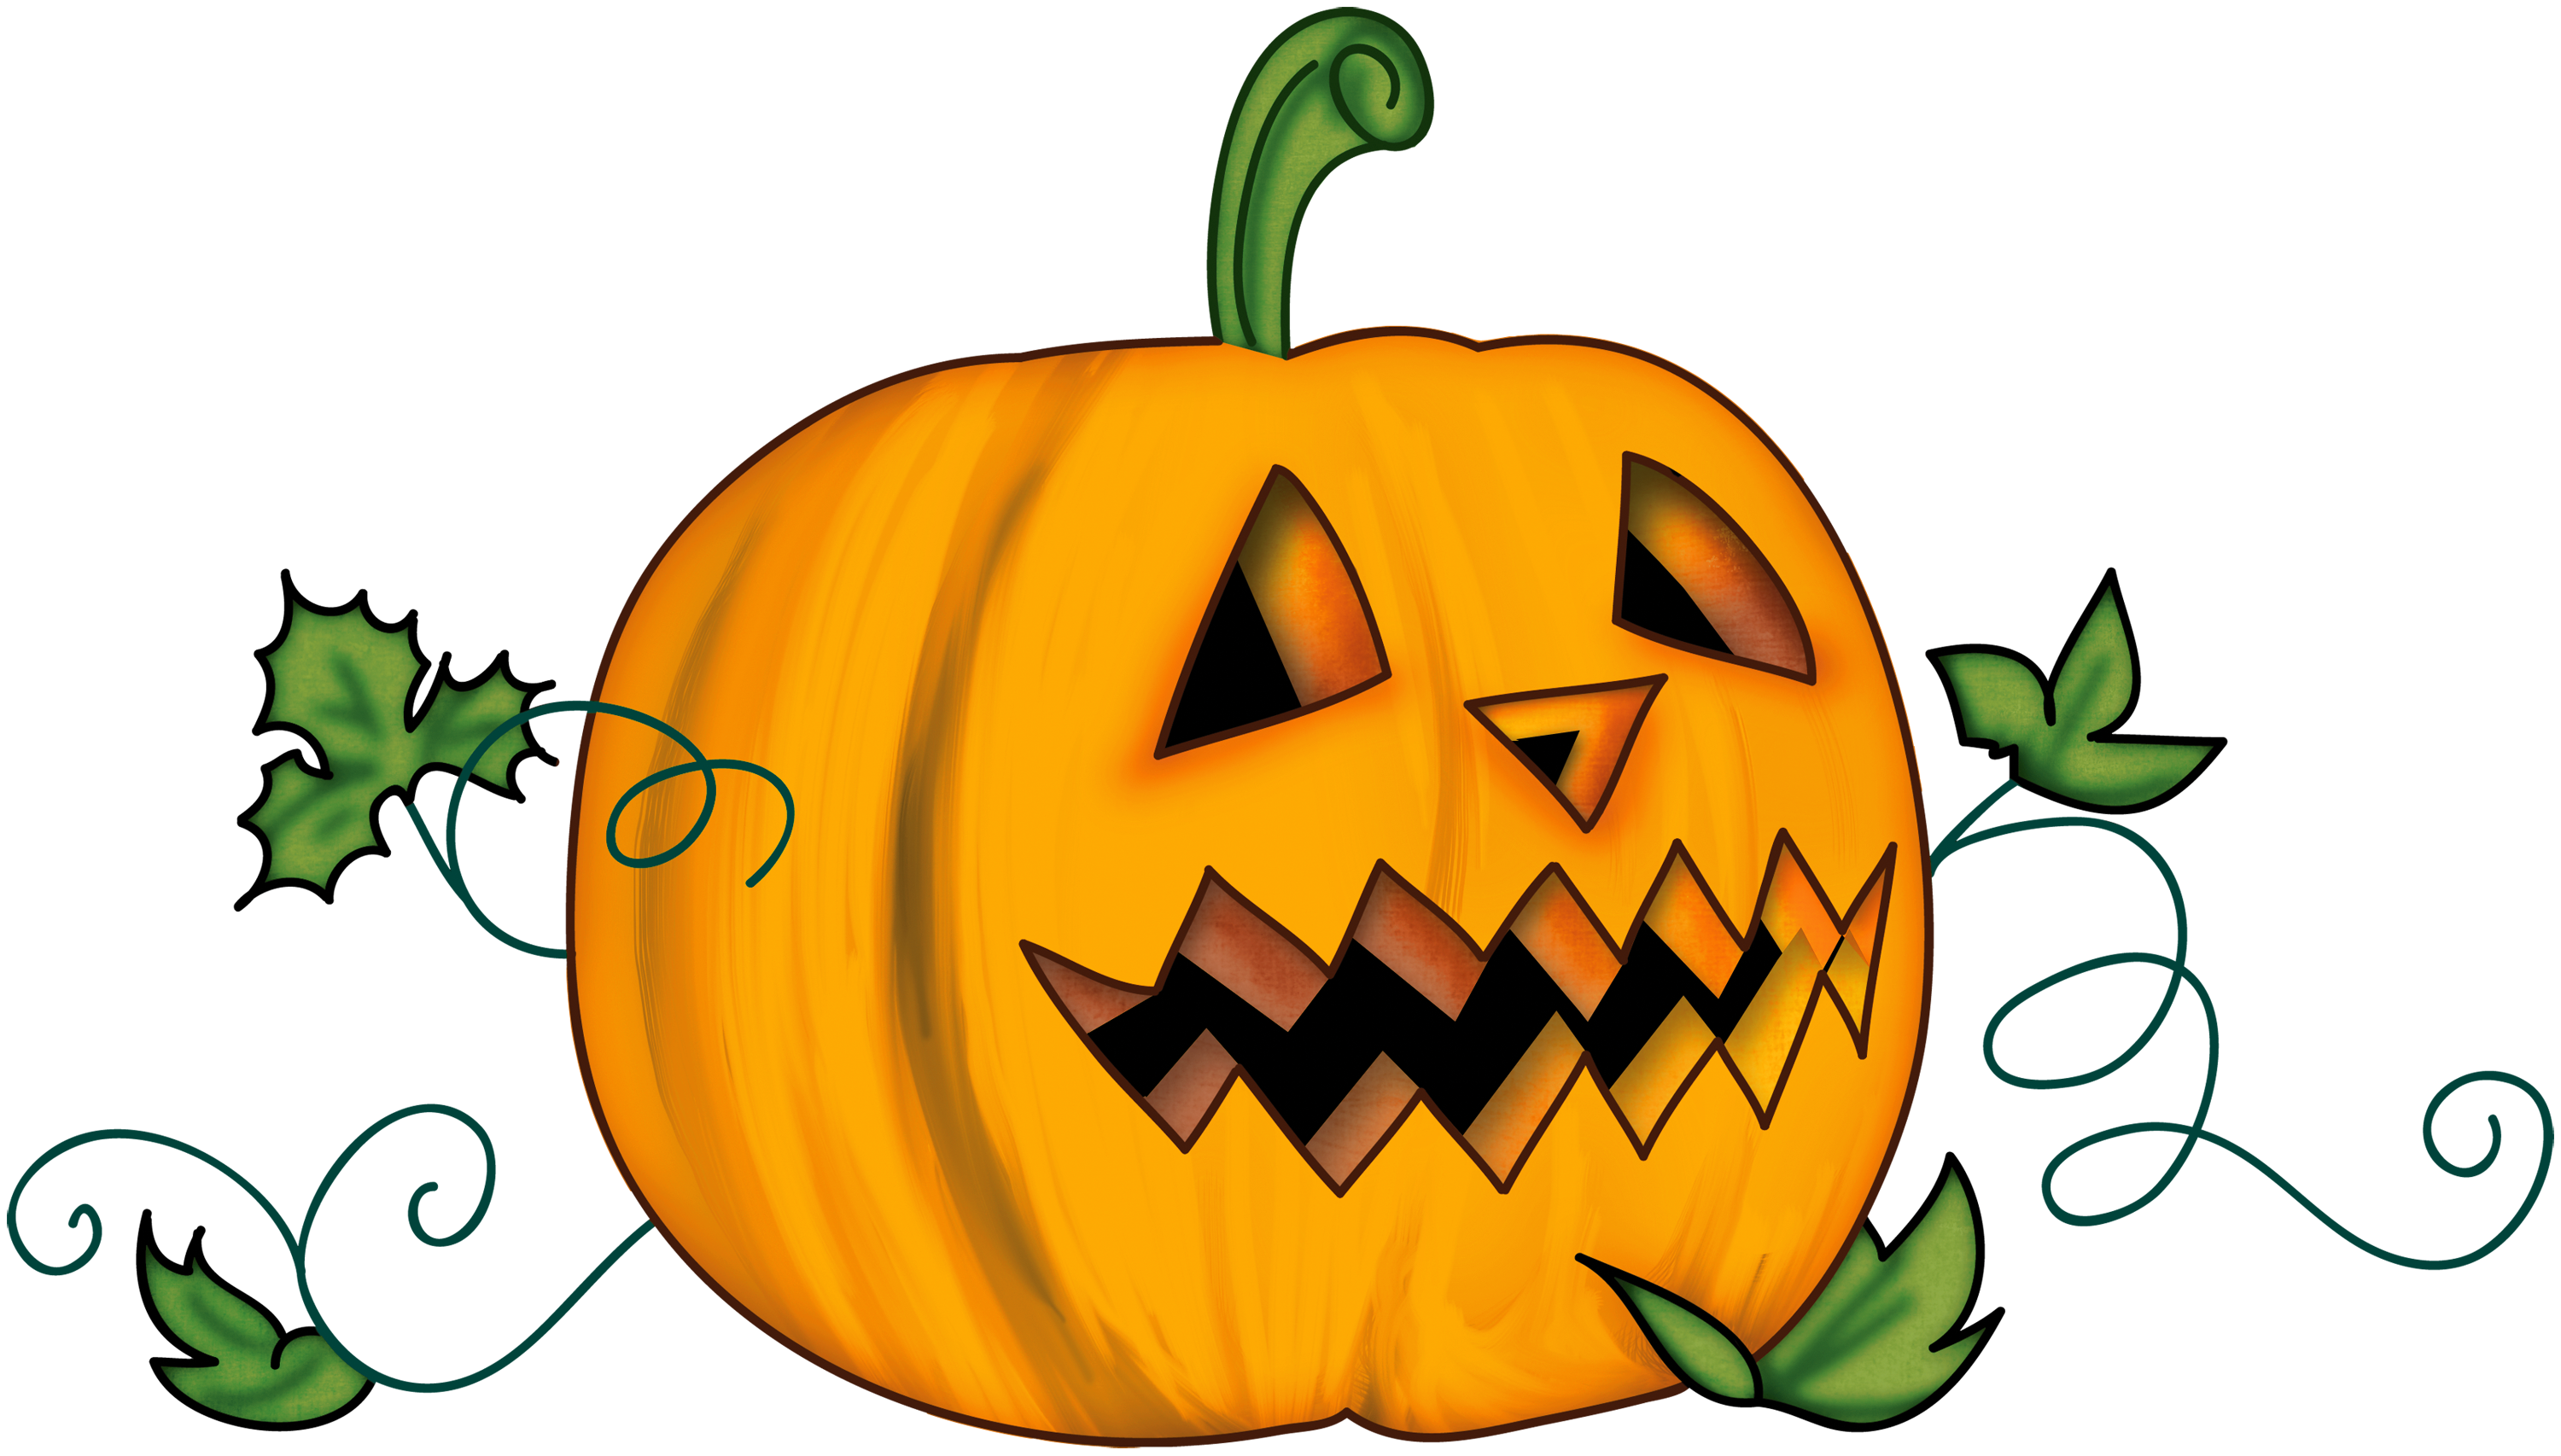 Halloween Pumpkin Cartoon Images.Scary Pumpkin Clipart At Getdrawings Com Free For Personal